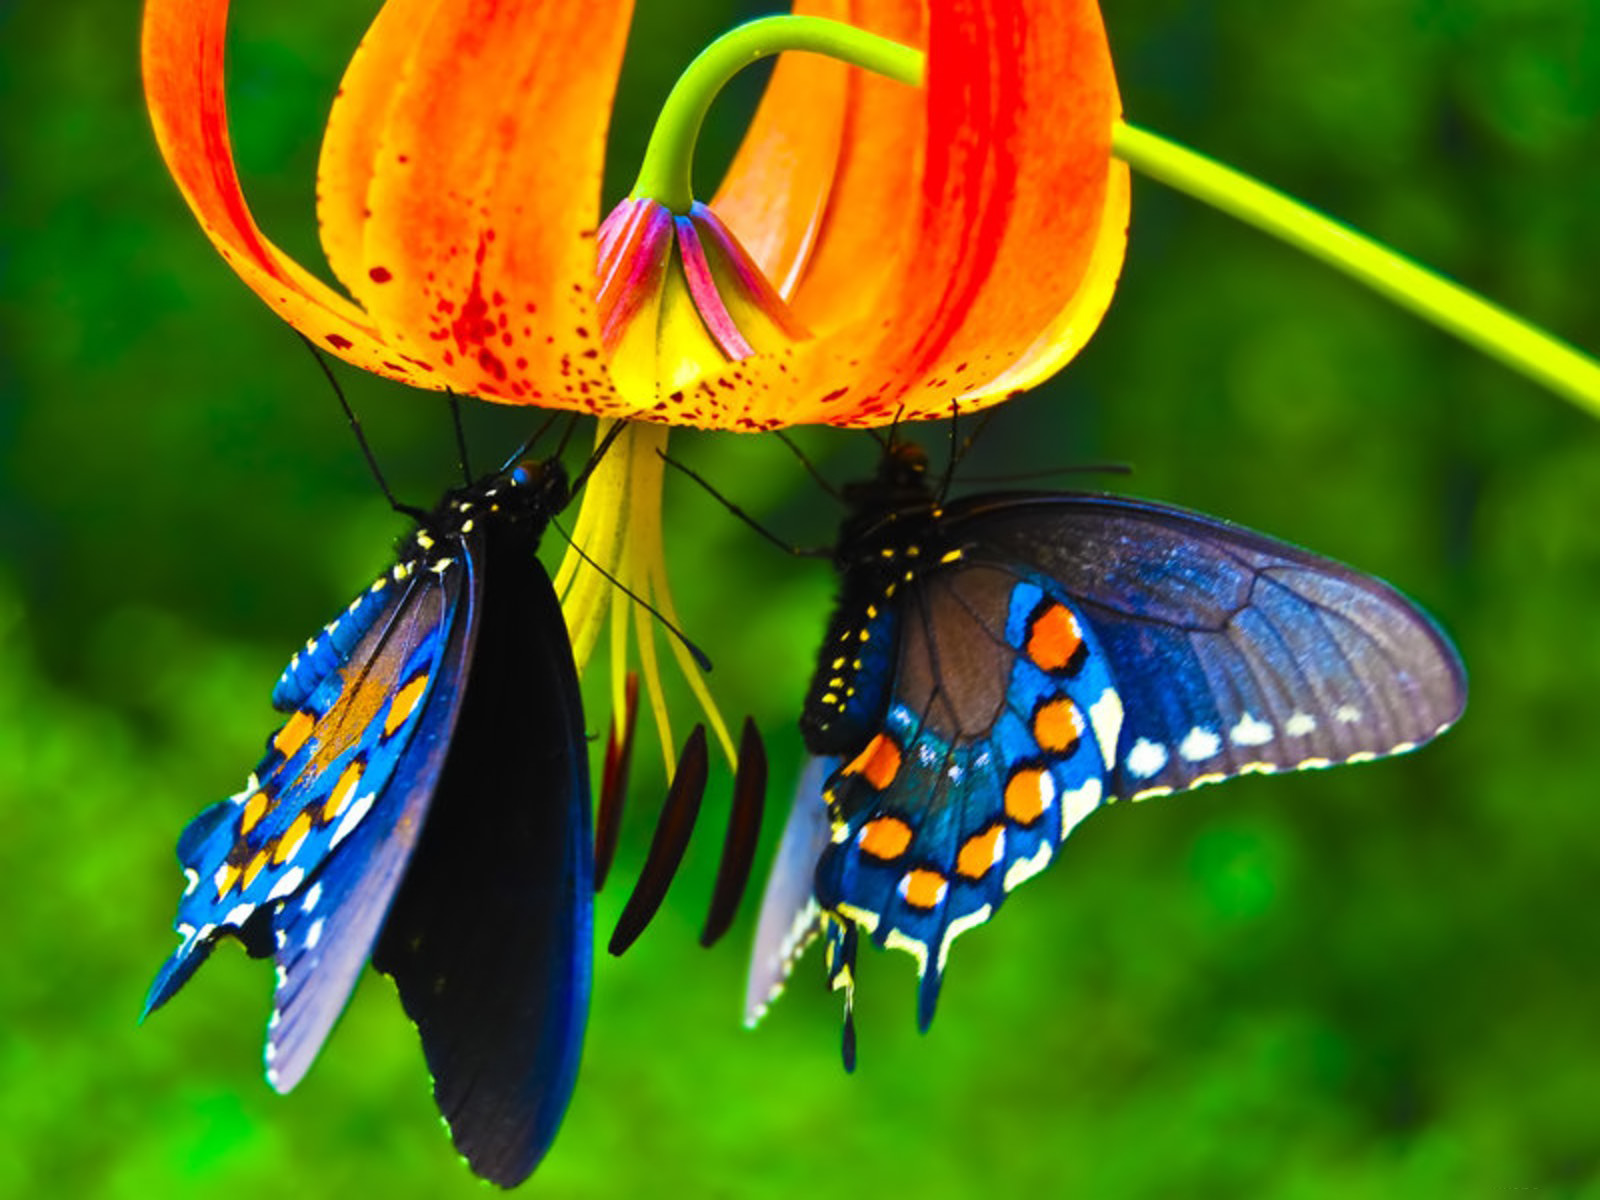 Butterflies on a flower. Gentleness exemplified.